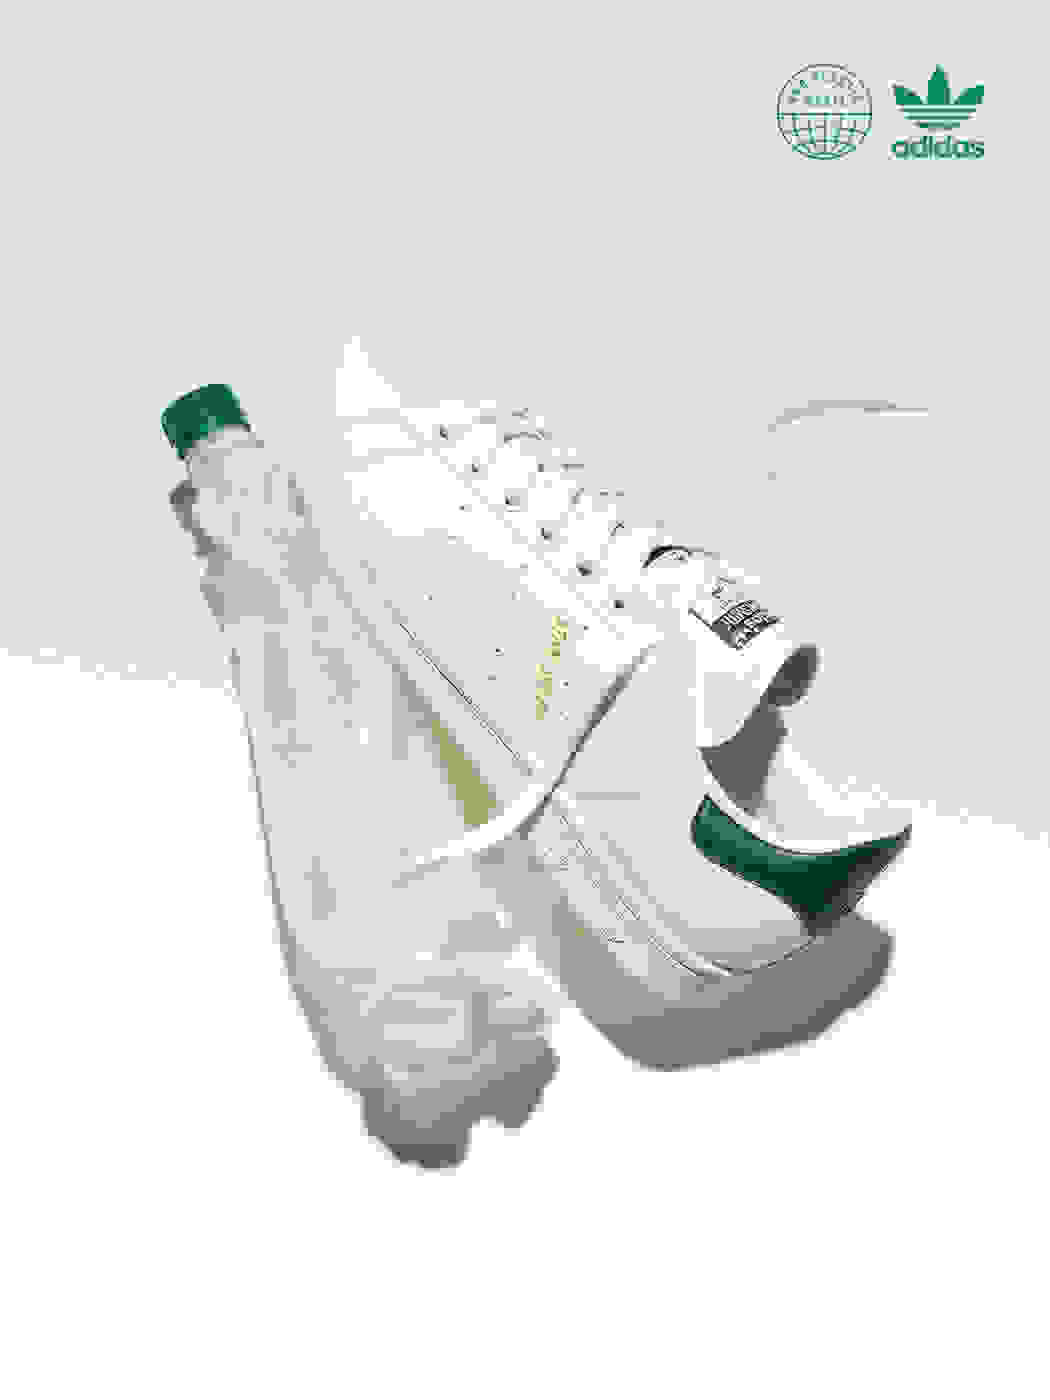 Stan Smith shoes next to a crumpled water bottle on a white background.